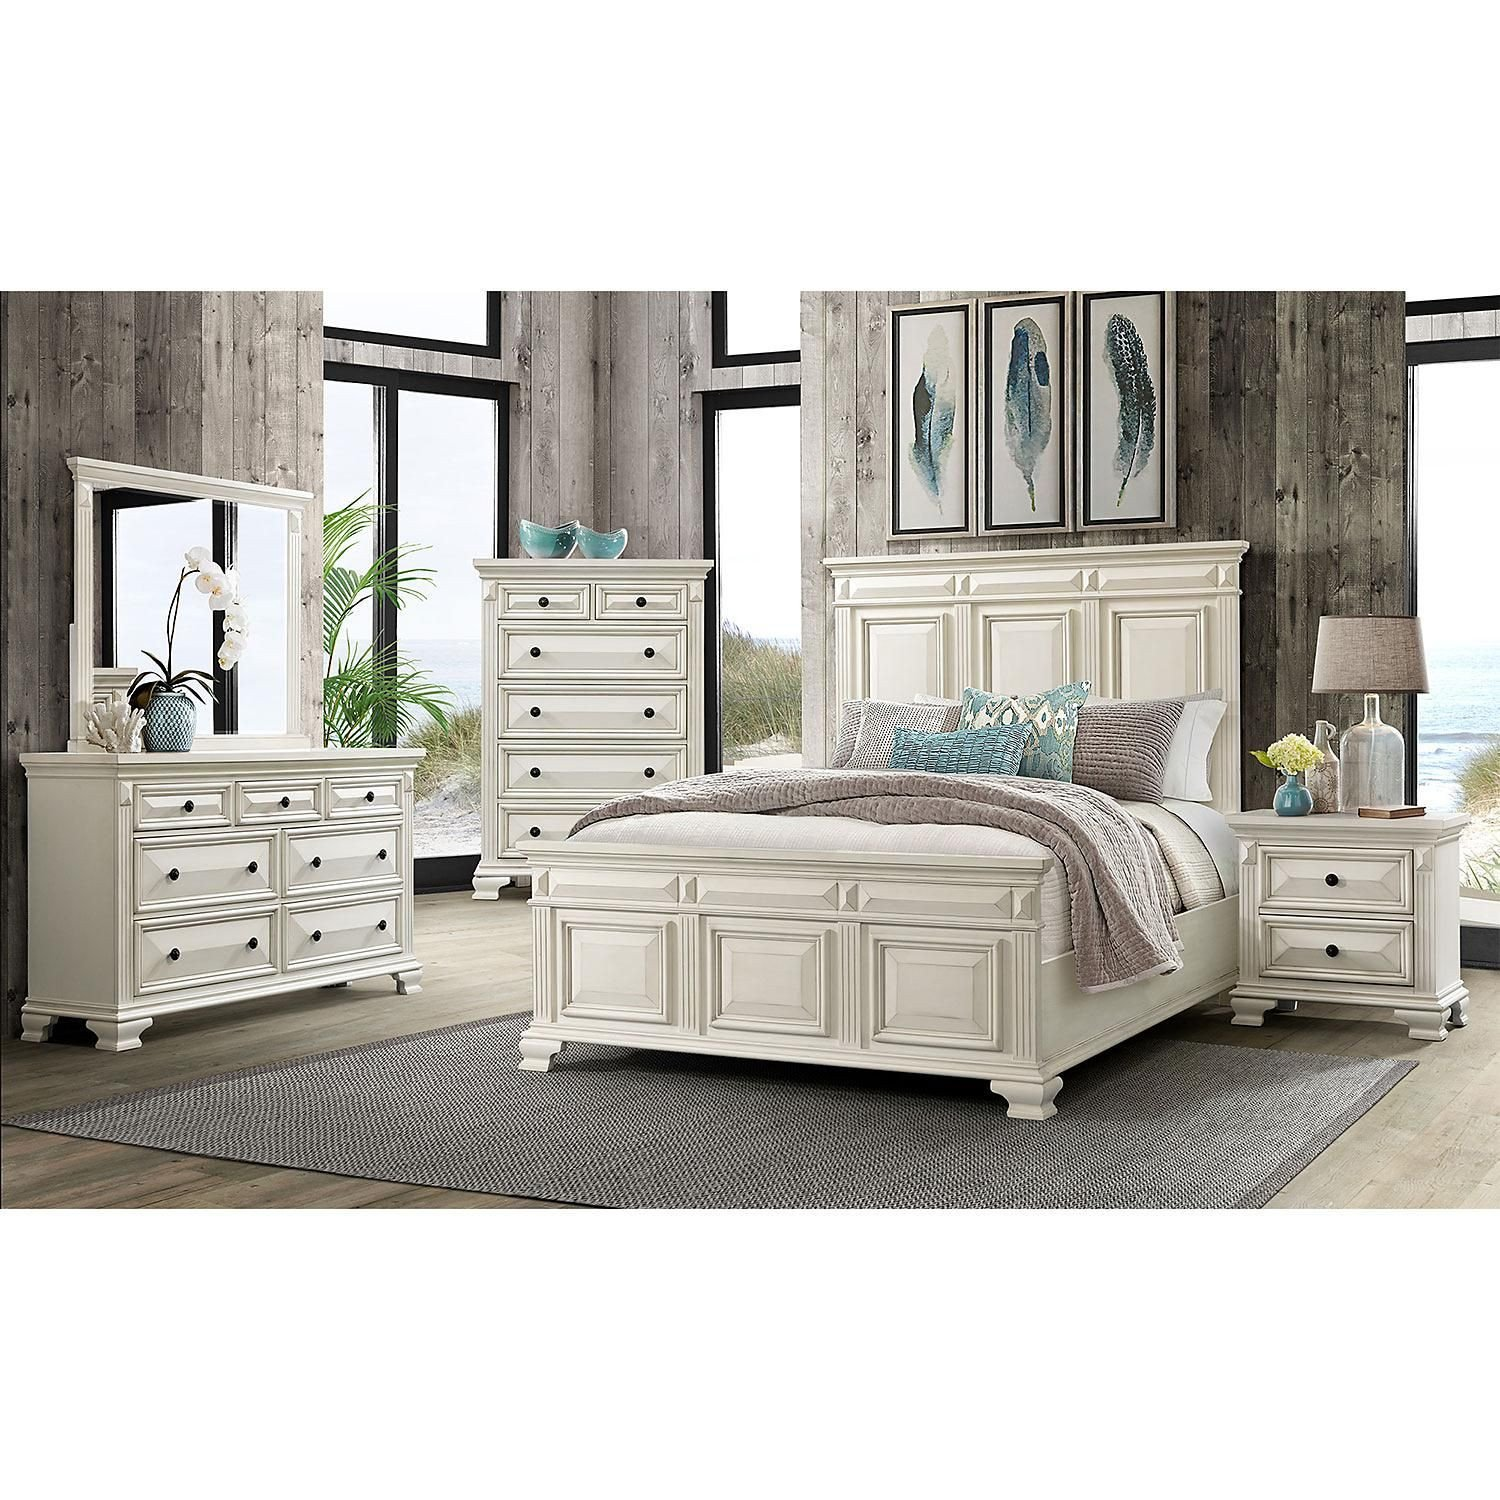 Queen Bedroom Set White New $1599 00 society Den Trent Panel 6 Piece King Bedroom Set